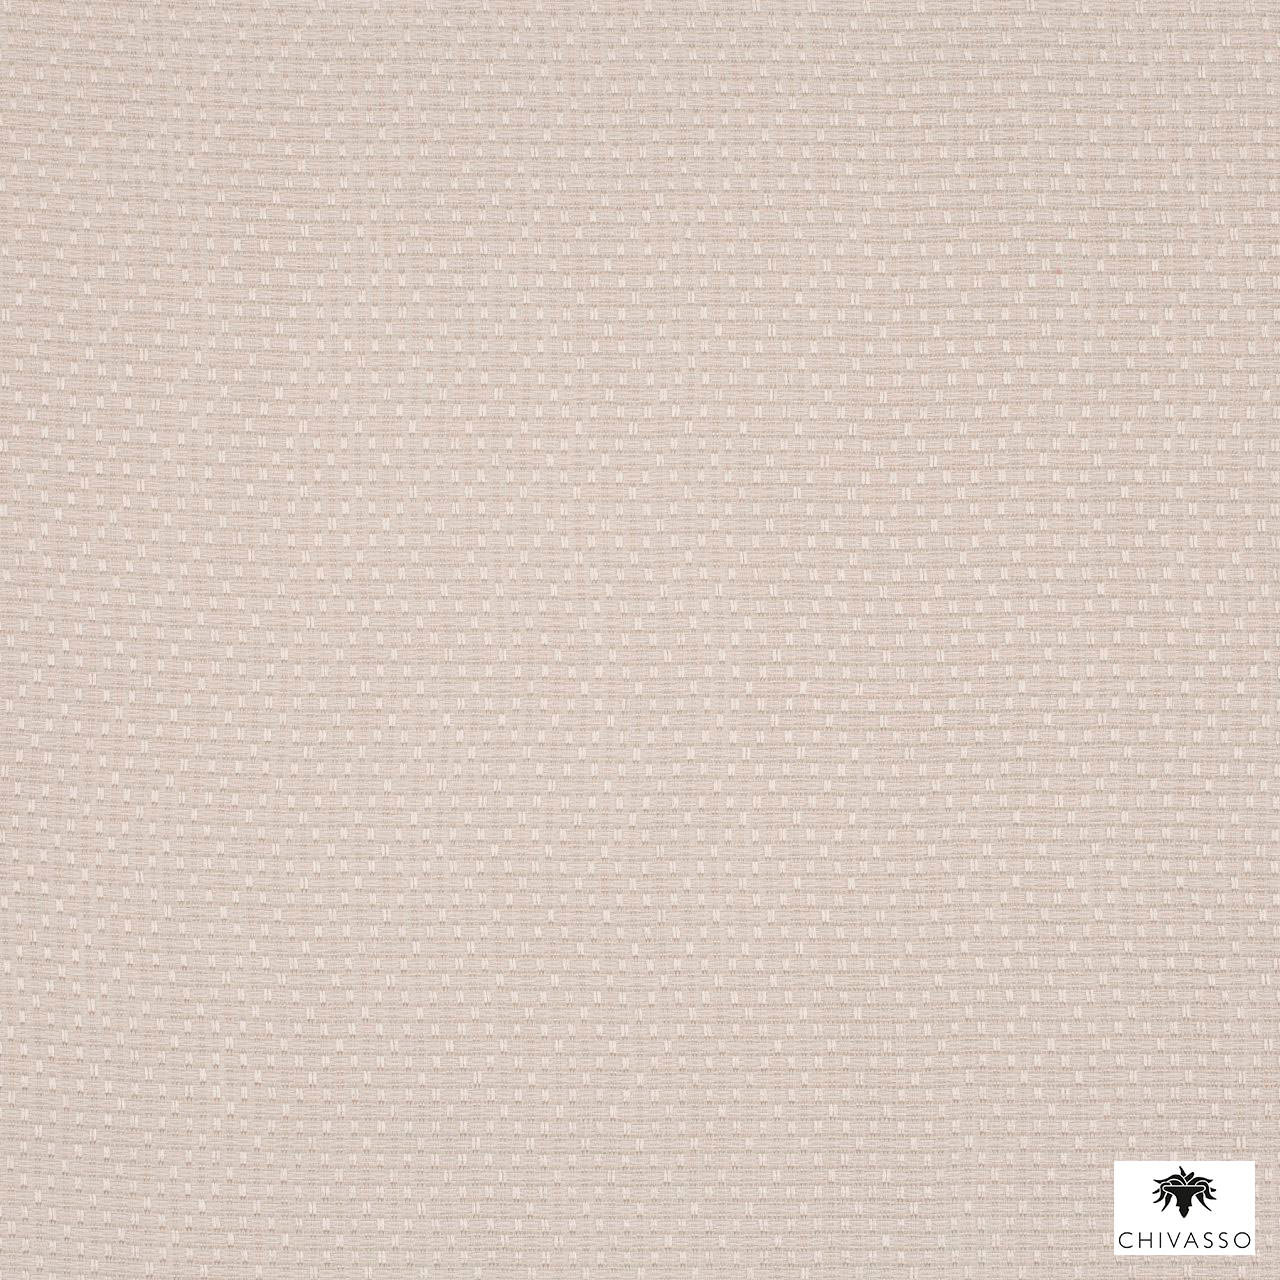 Chivasso - Vintage Star - Ch2774-092  | Curtain Fabric - Beige, Brown, Plain, Fibre Blends, Domestic Use, Textured Weave, Plain - Textured Weave, Railroaded, Wide Width